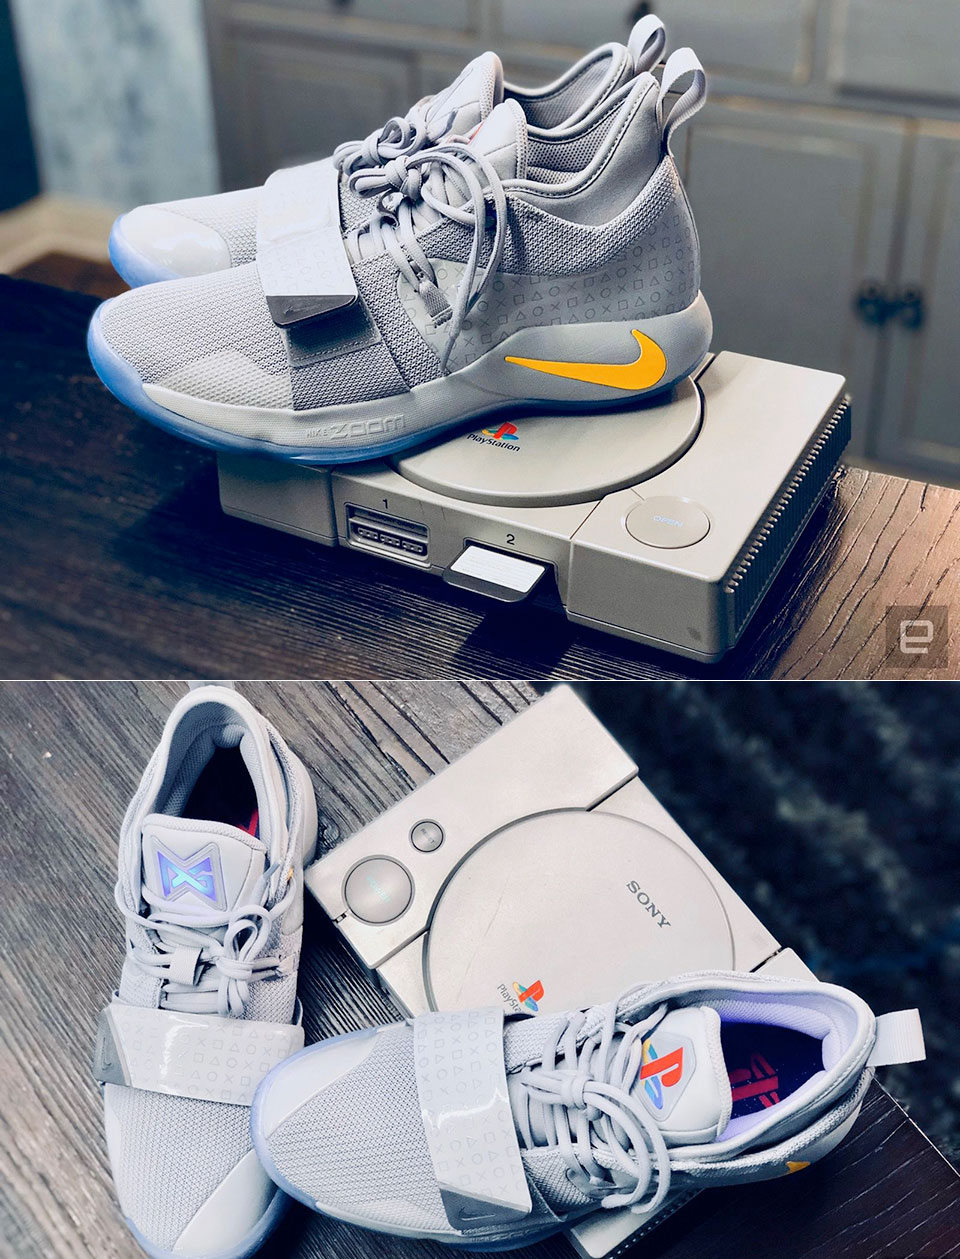 buy popular c7014 ec63b Hands-On Pictures of Nike's New PG 2.5 x PlayStation ...